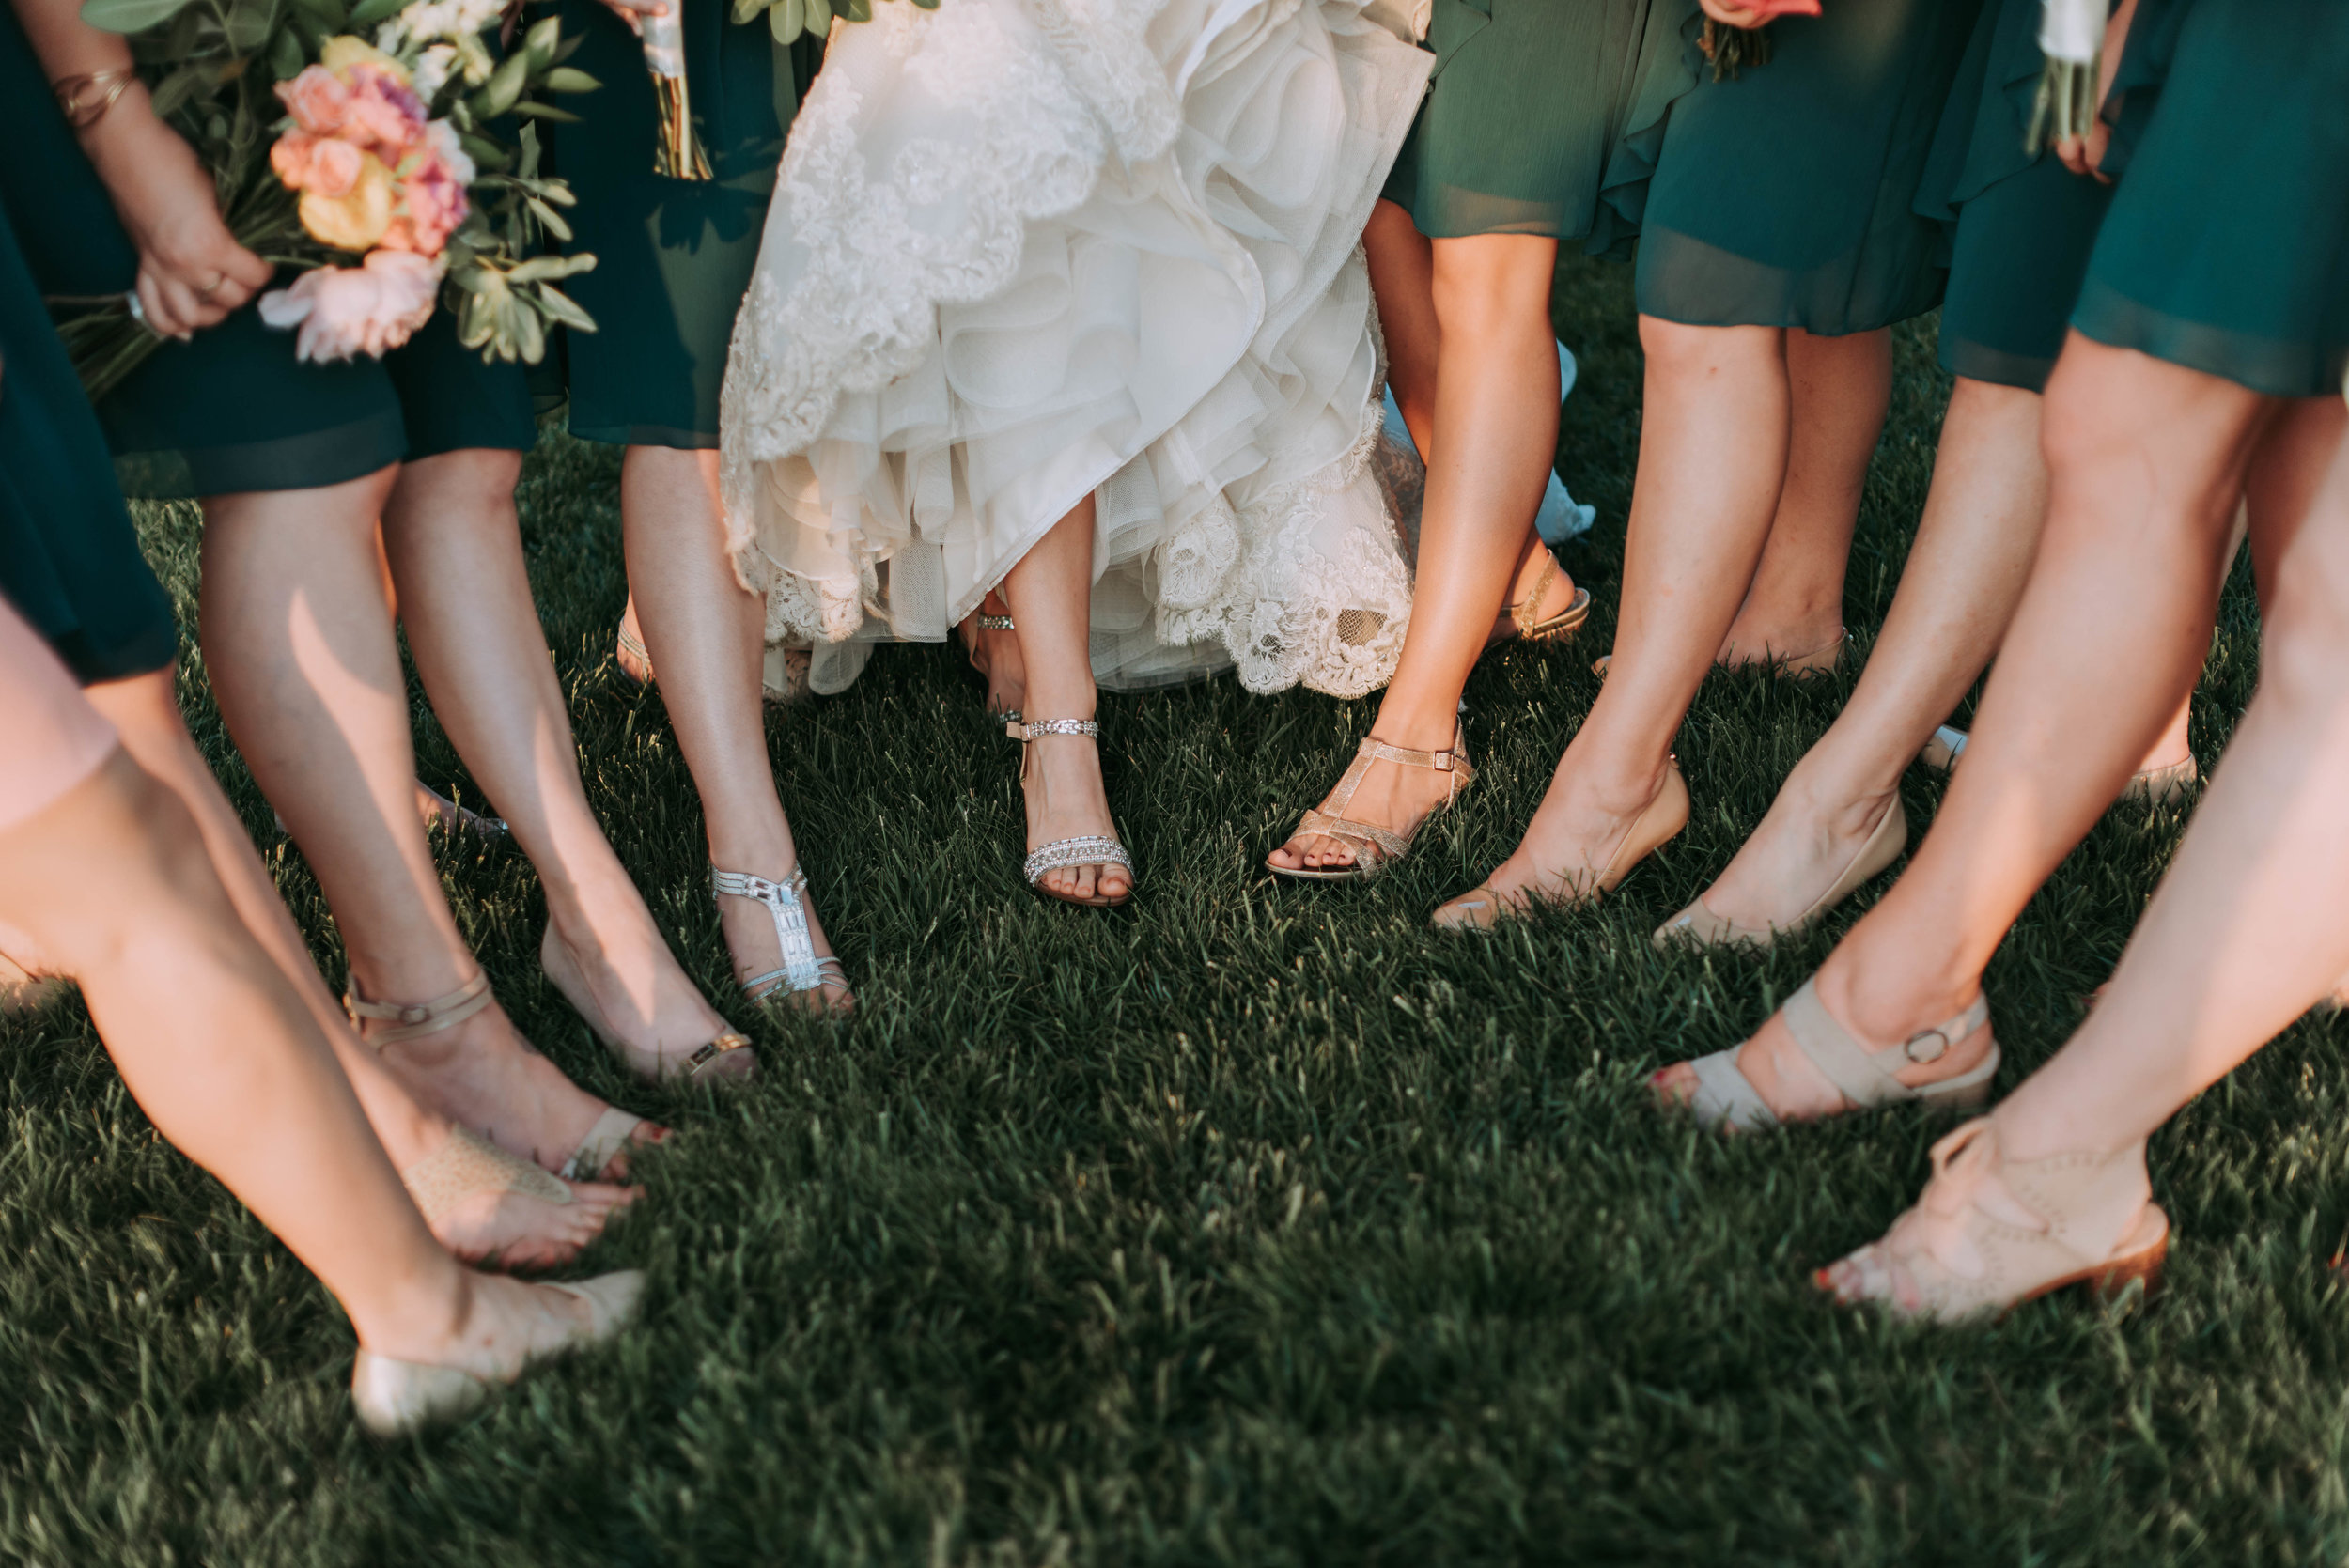 Different Dresses - Flowing from the use of more vibrant colours, 2019 will see plenty of non-traditional bridesmaid dresses. Consider using an eclectic but complementary colour palette and your girls will thank you.